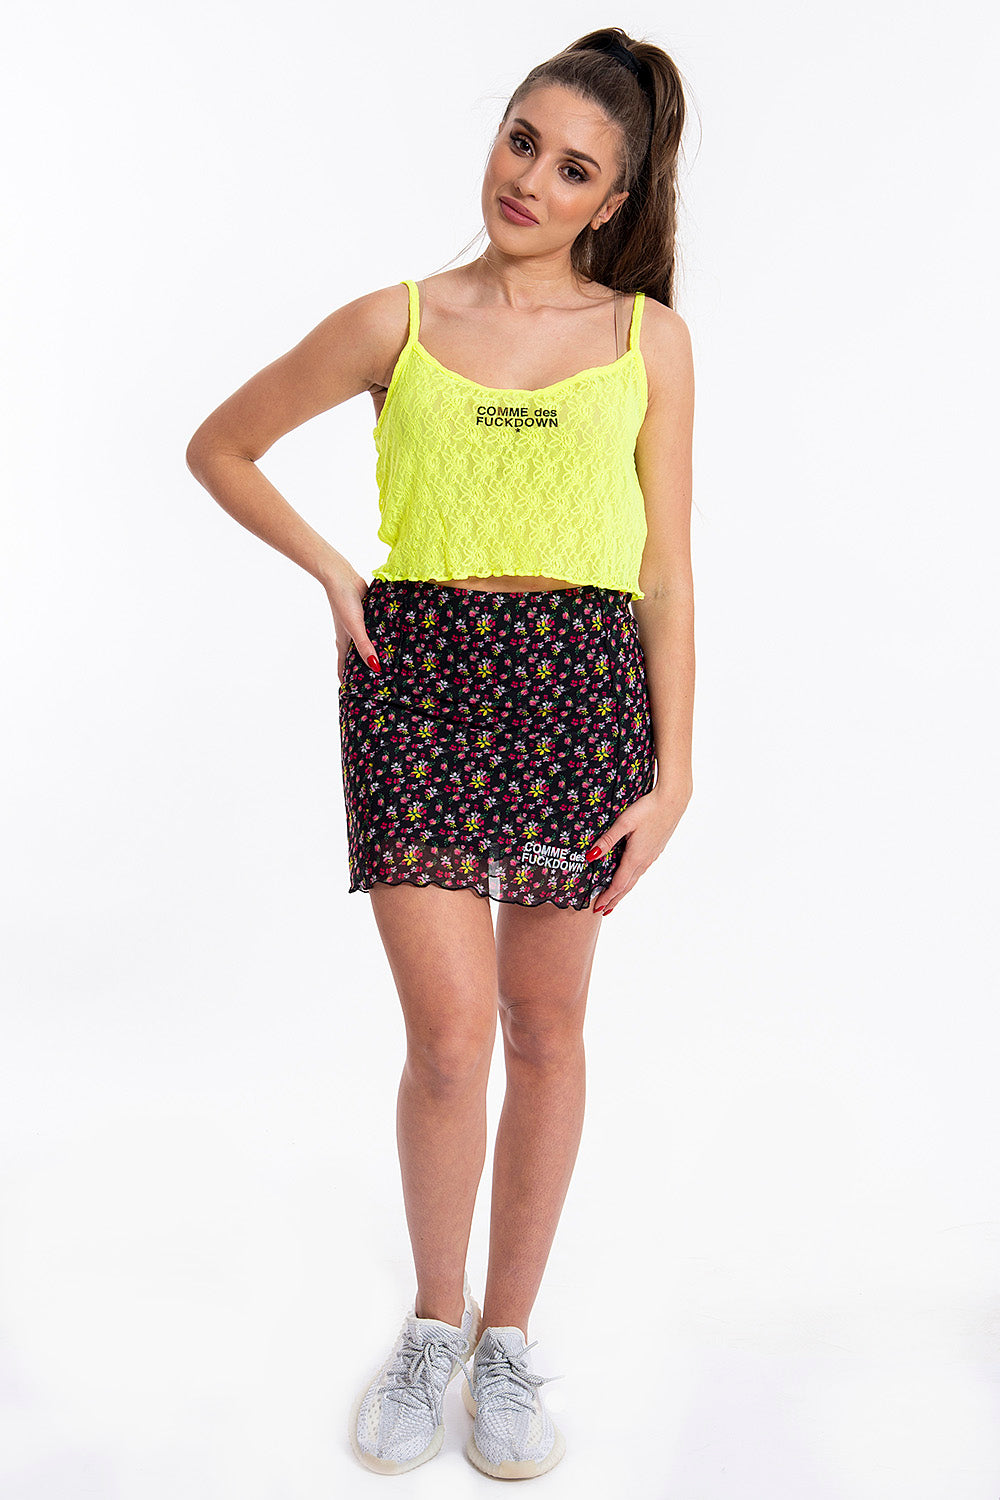 Comme des Fuckdown yellow neon lace cropped top